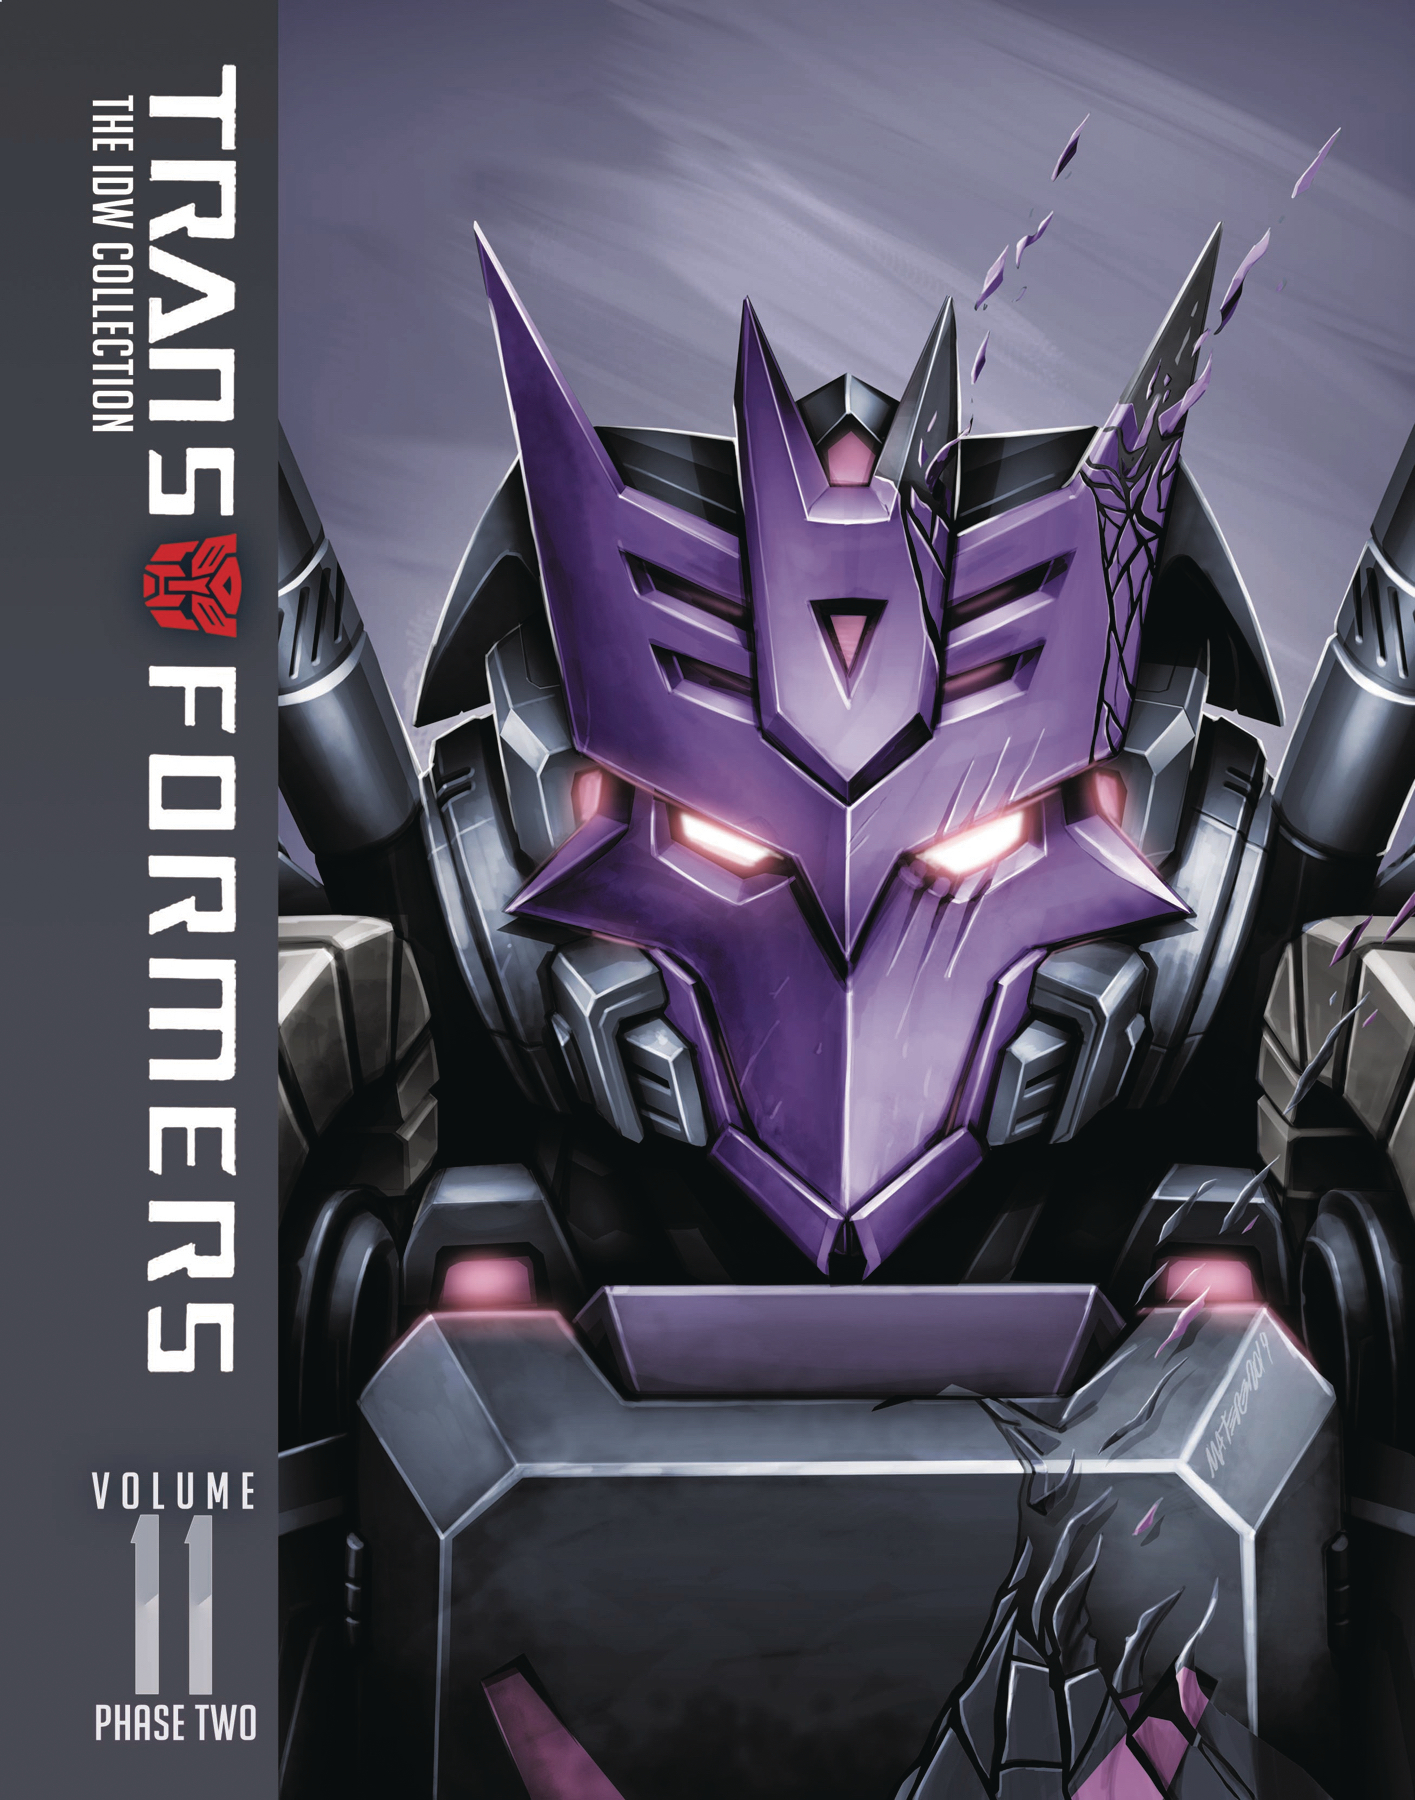 Transformers News: IDW Publishing February 2020 Transformers Comics Solicitations